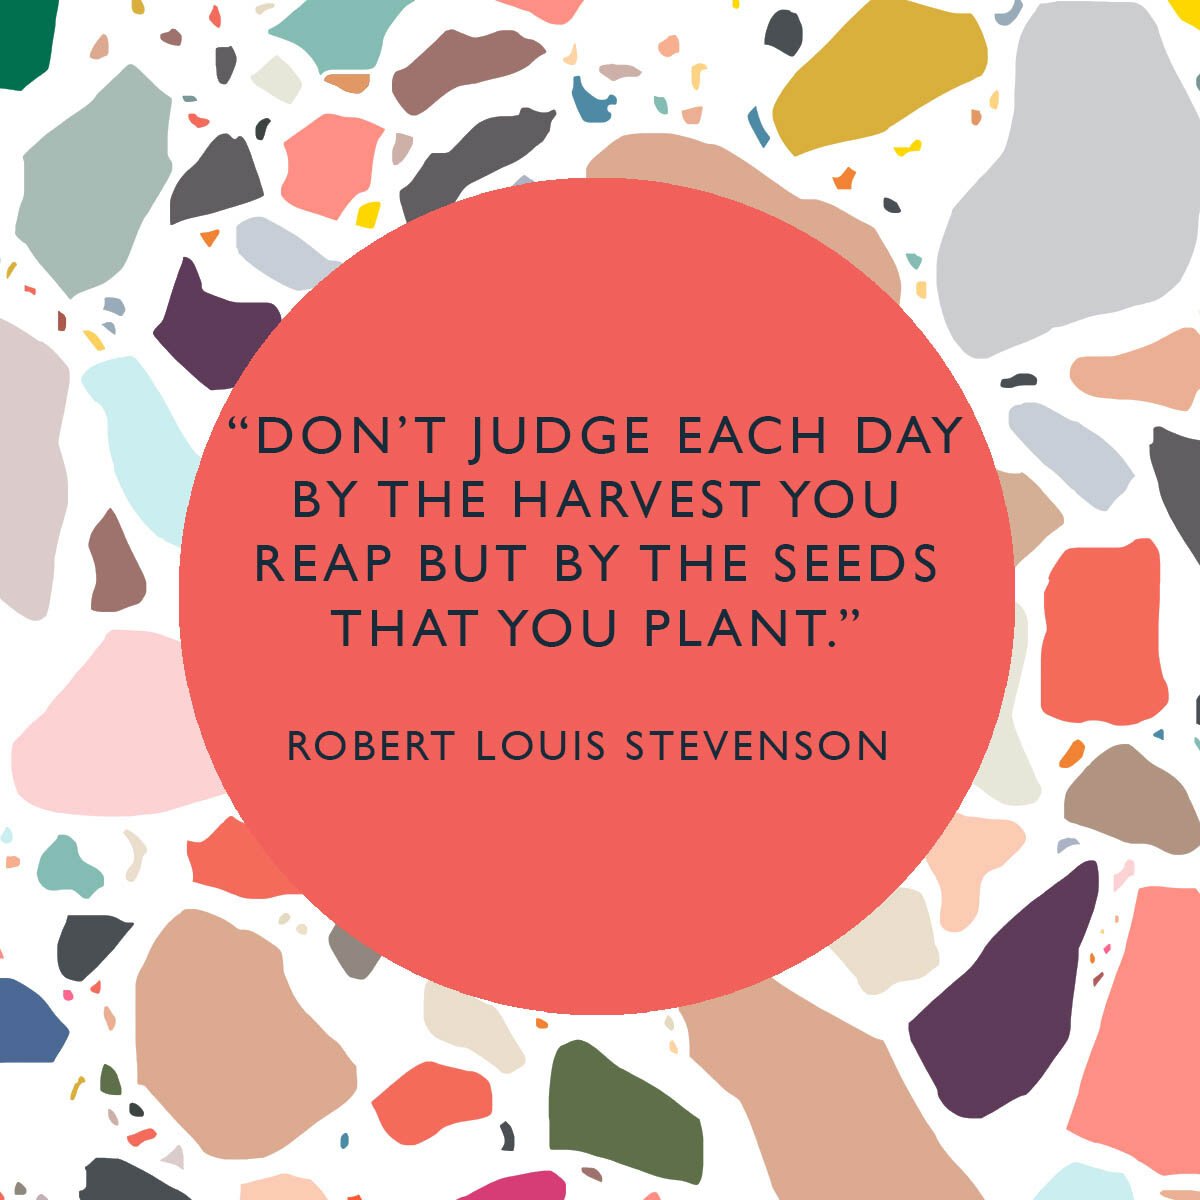 MOTIVATIONAL QUOTE SEEDS STEVENSON